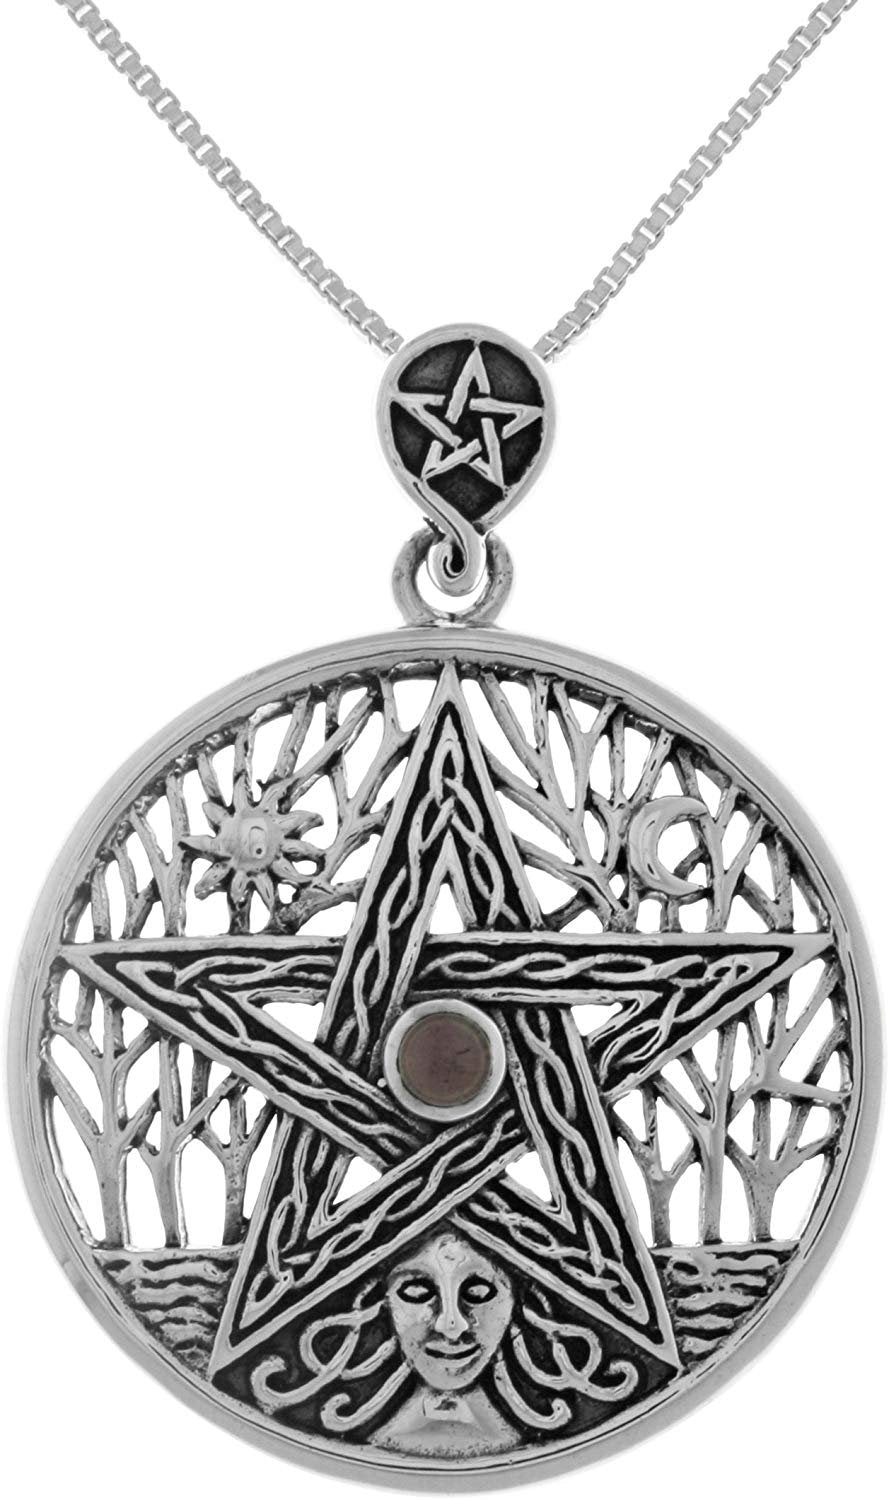 Jewelry Trends Sterling Silver Celtic Goddess Pentacle Pendant with Amethyst on Chain Necklace